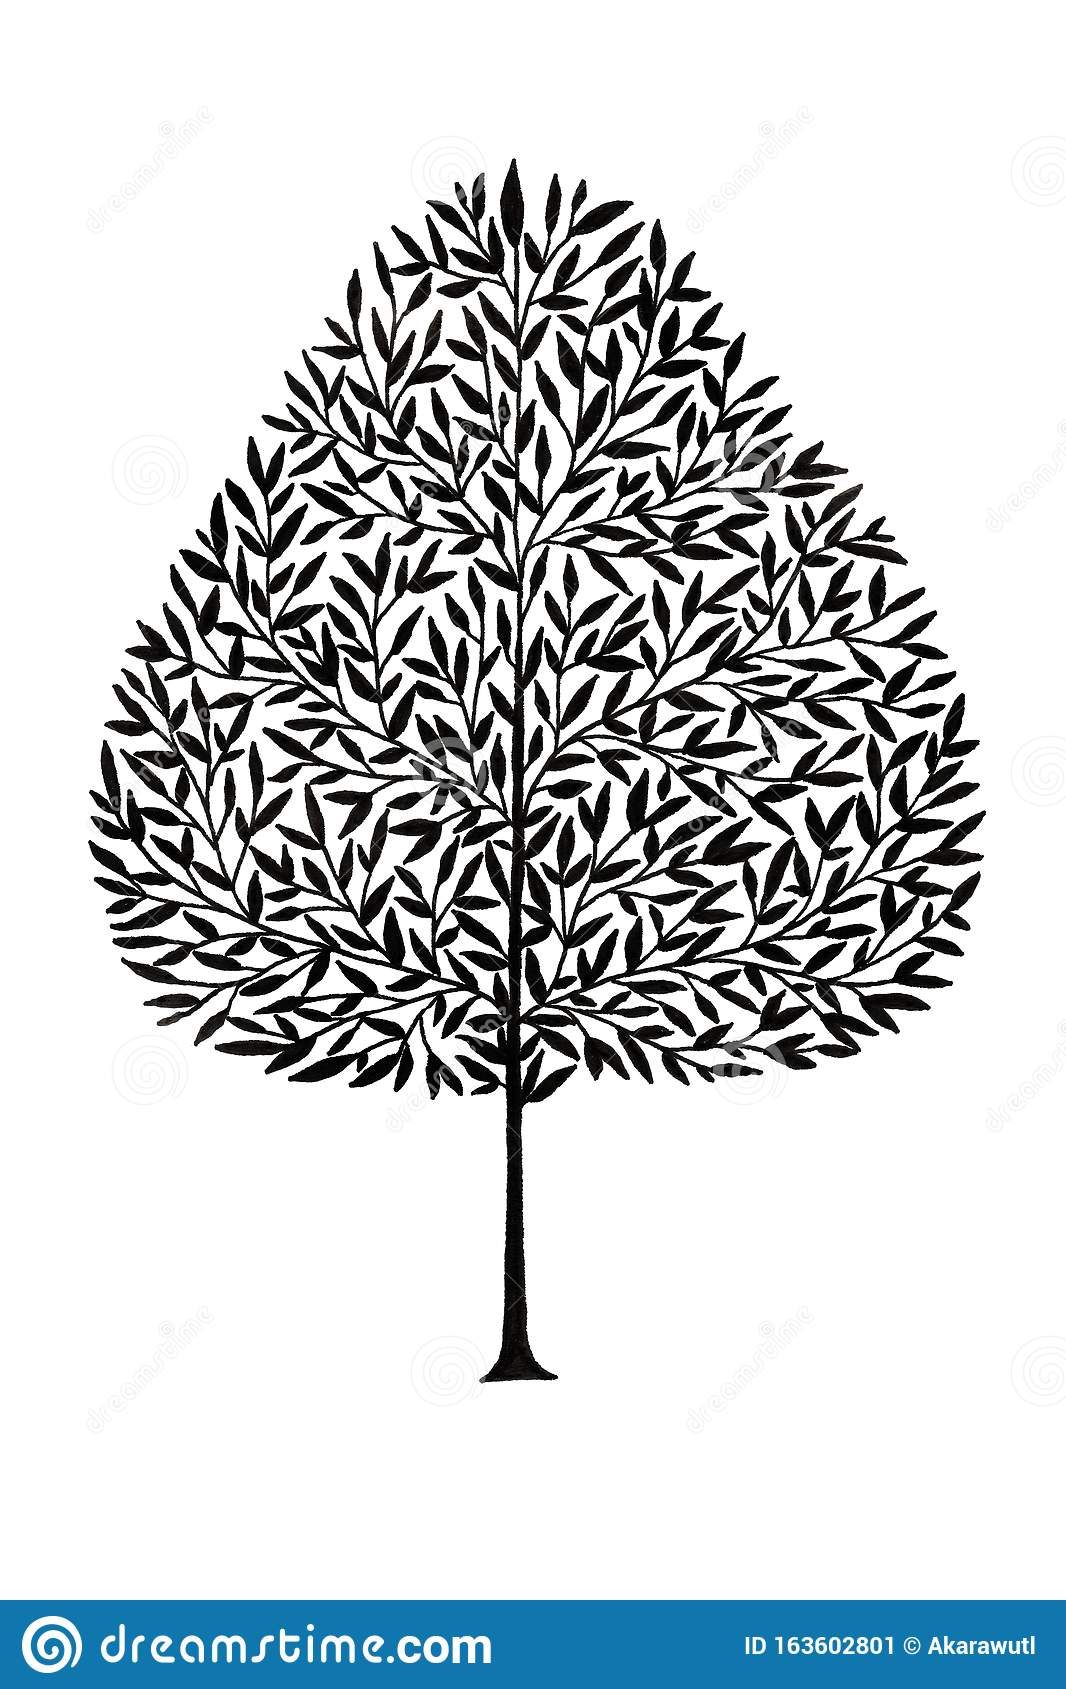 Simple Tree Drawing Using Ink Pen In Silhouette Style For Icon And Graphic Design Element Purpose Stock Illustration Illustration Of Nature Botanical 163602801